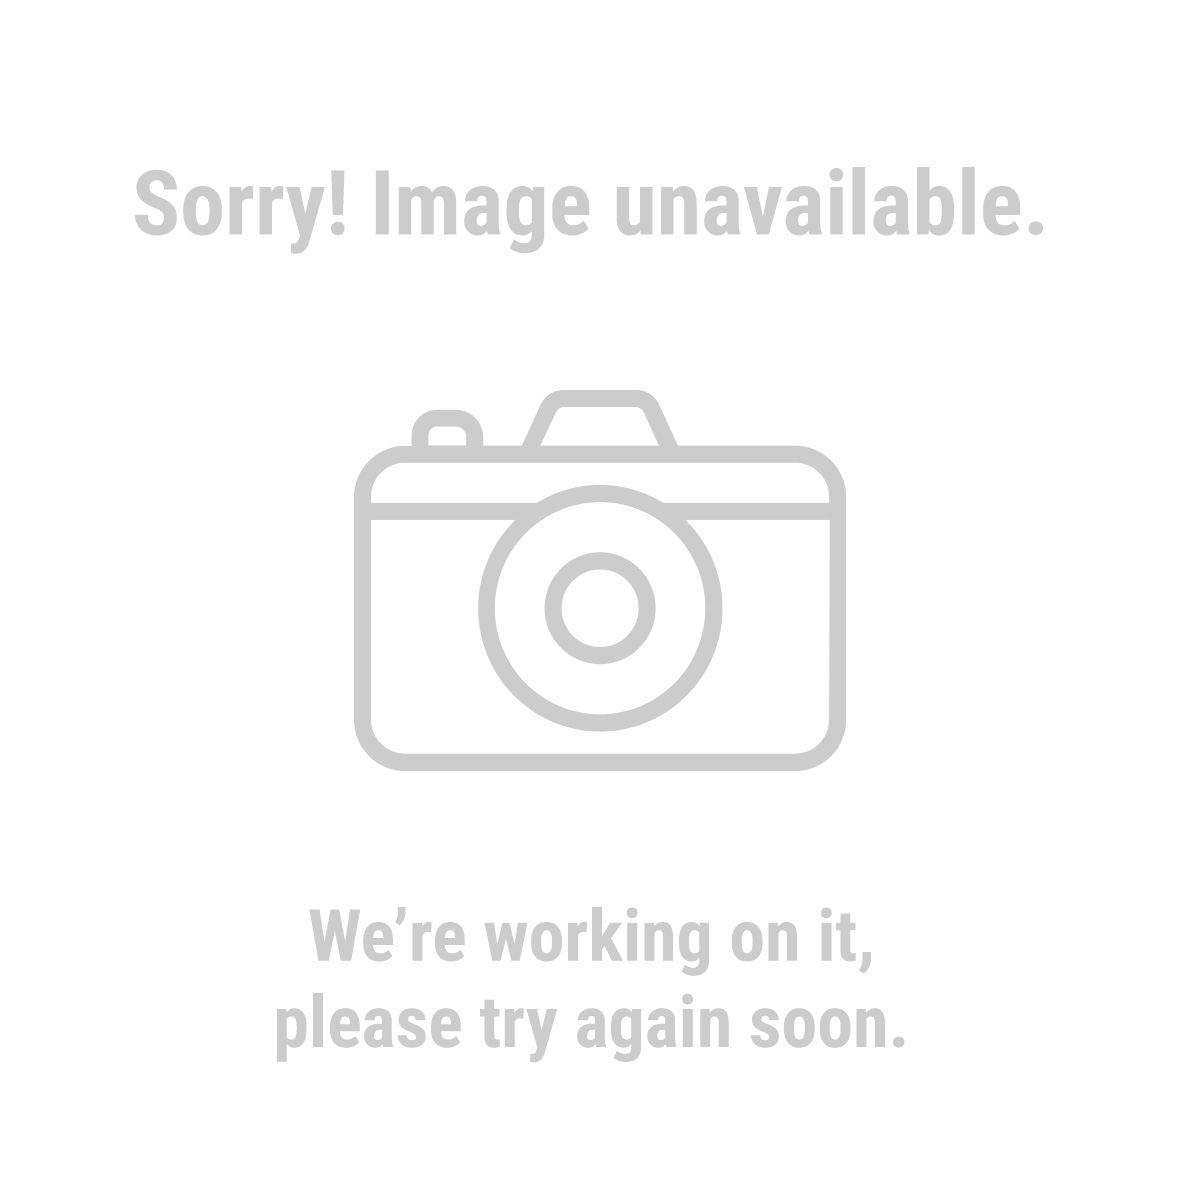 Luminar Work 66433 Portable Halogen Shop Light